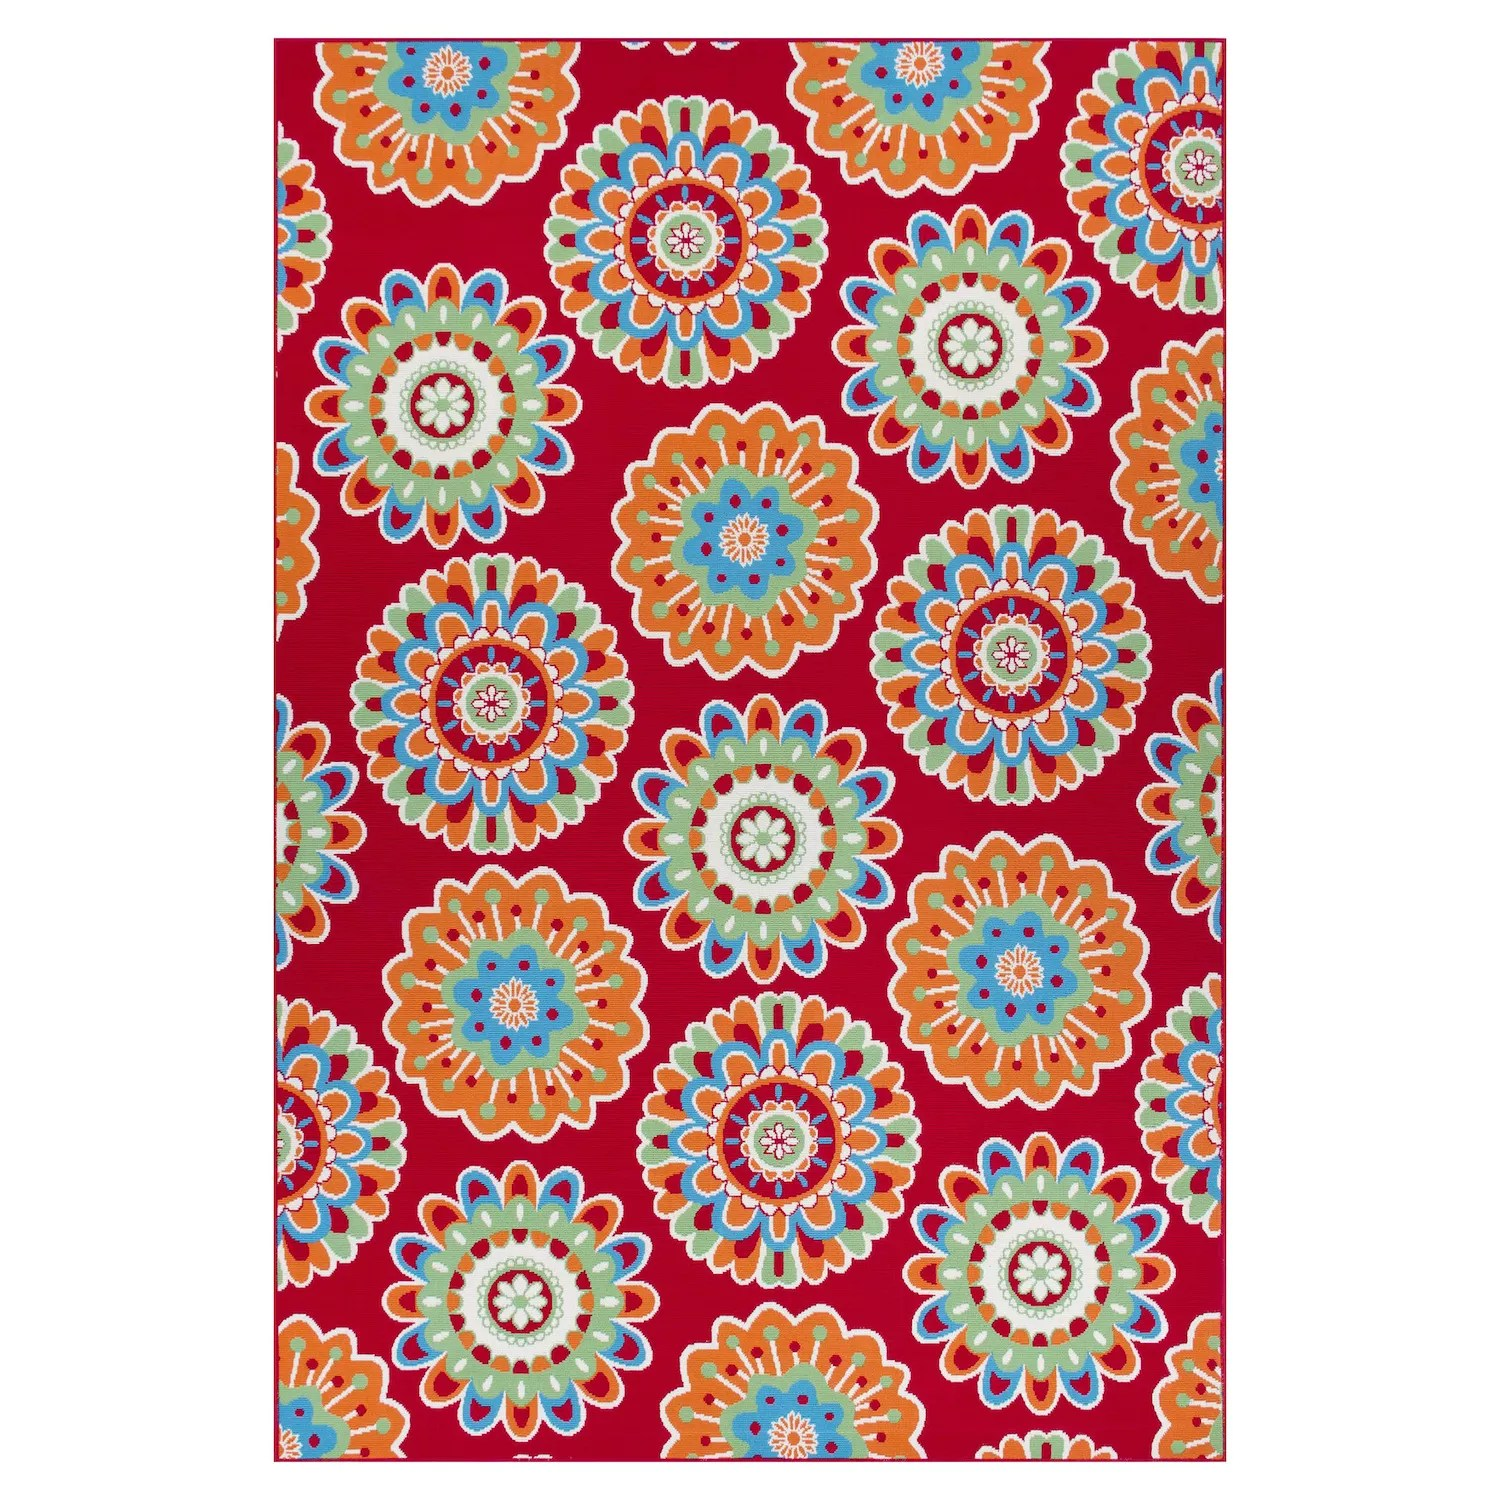 sonoma goods for life floral medallion indoor outdoor area and throw rug